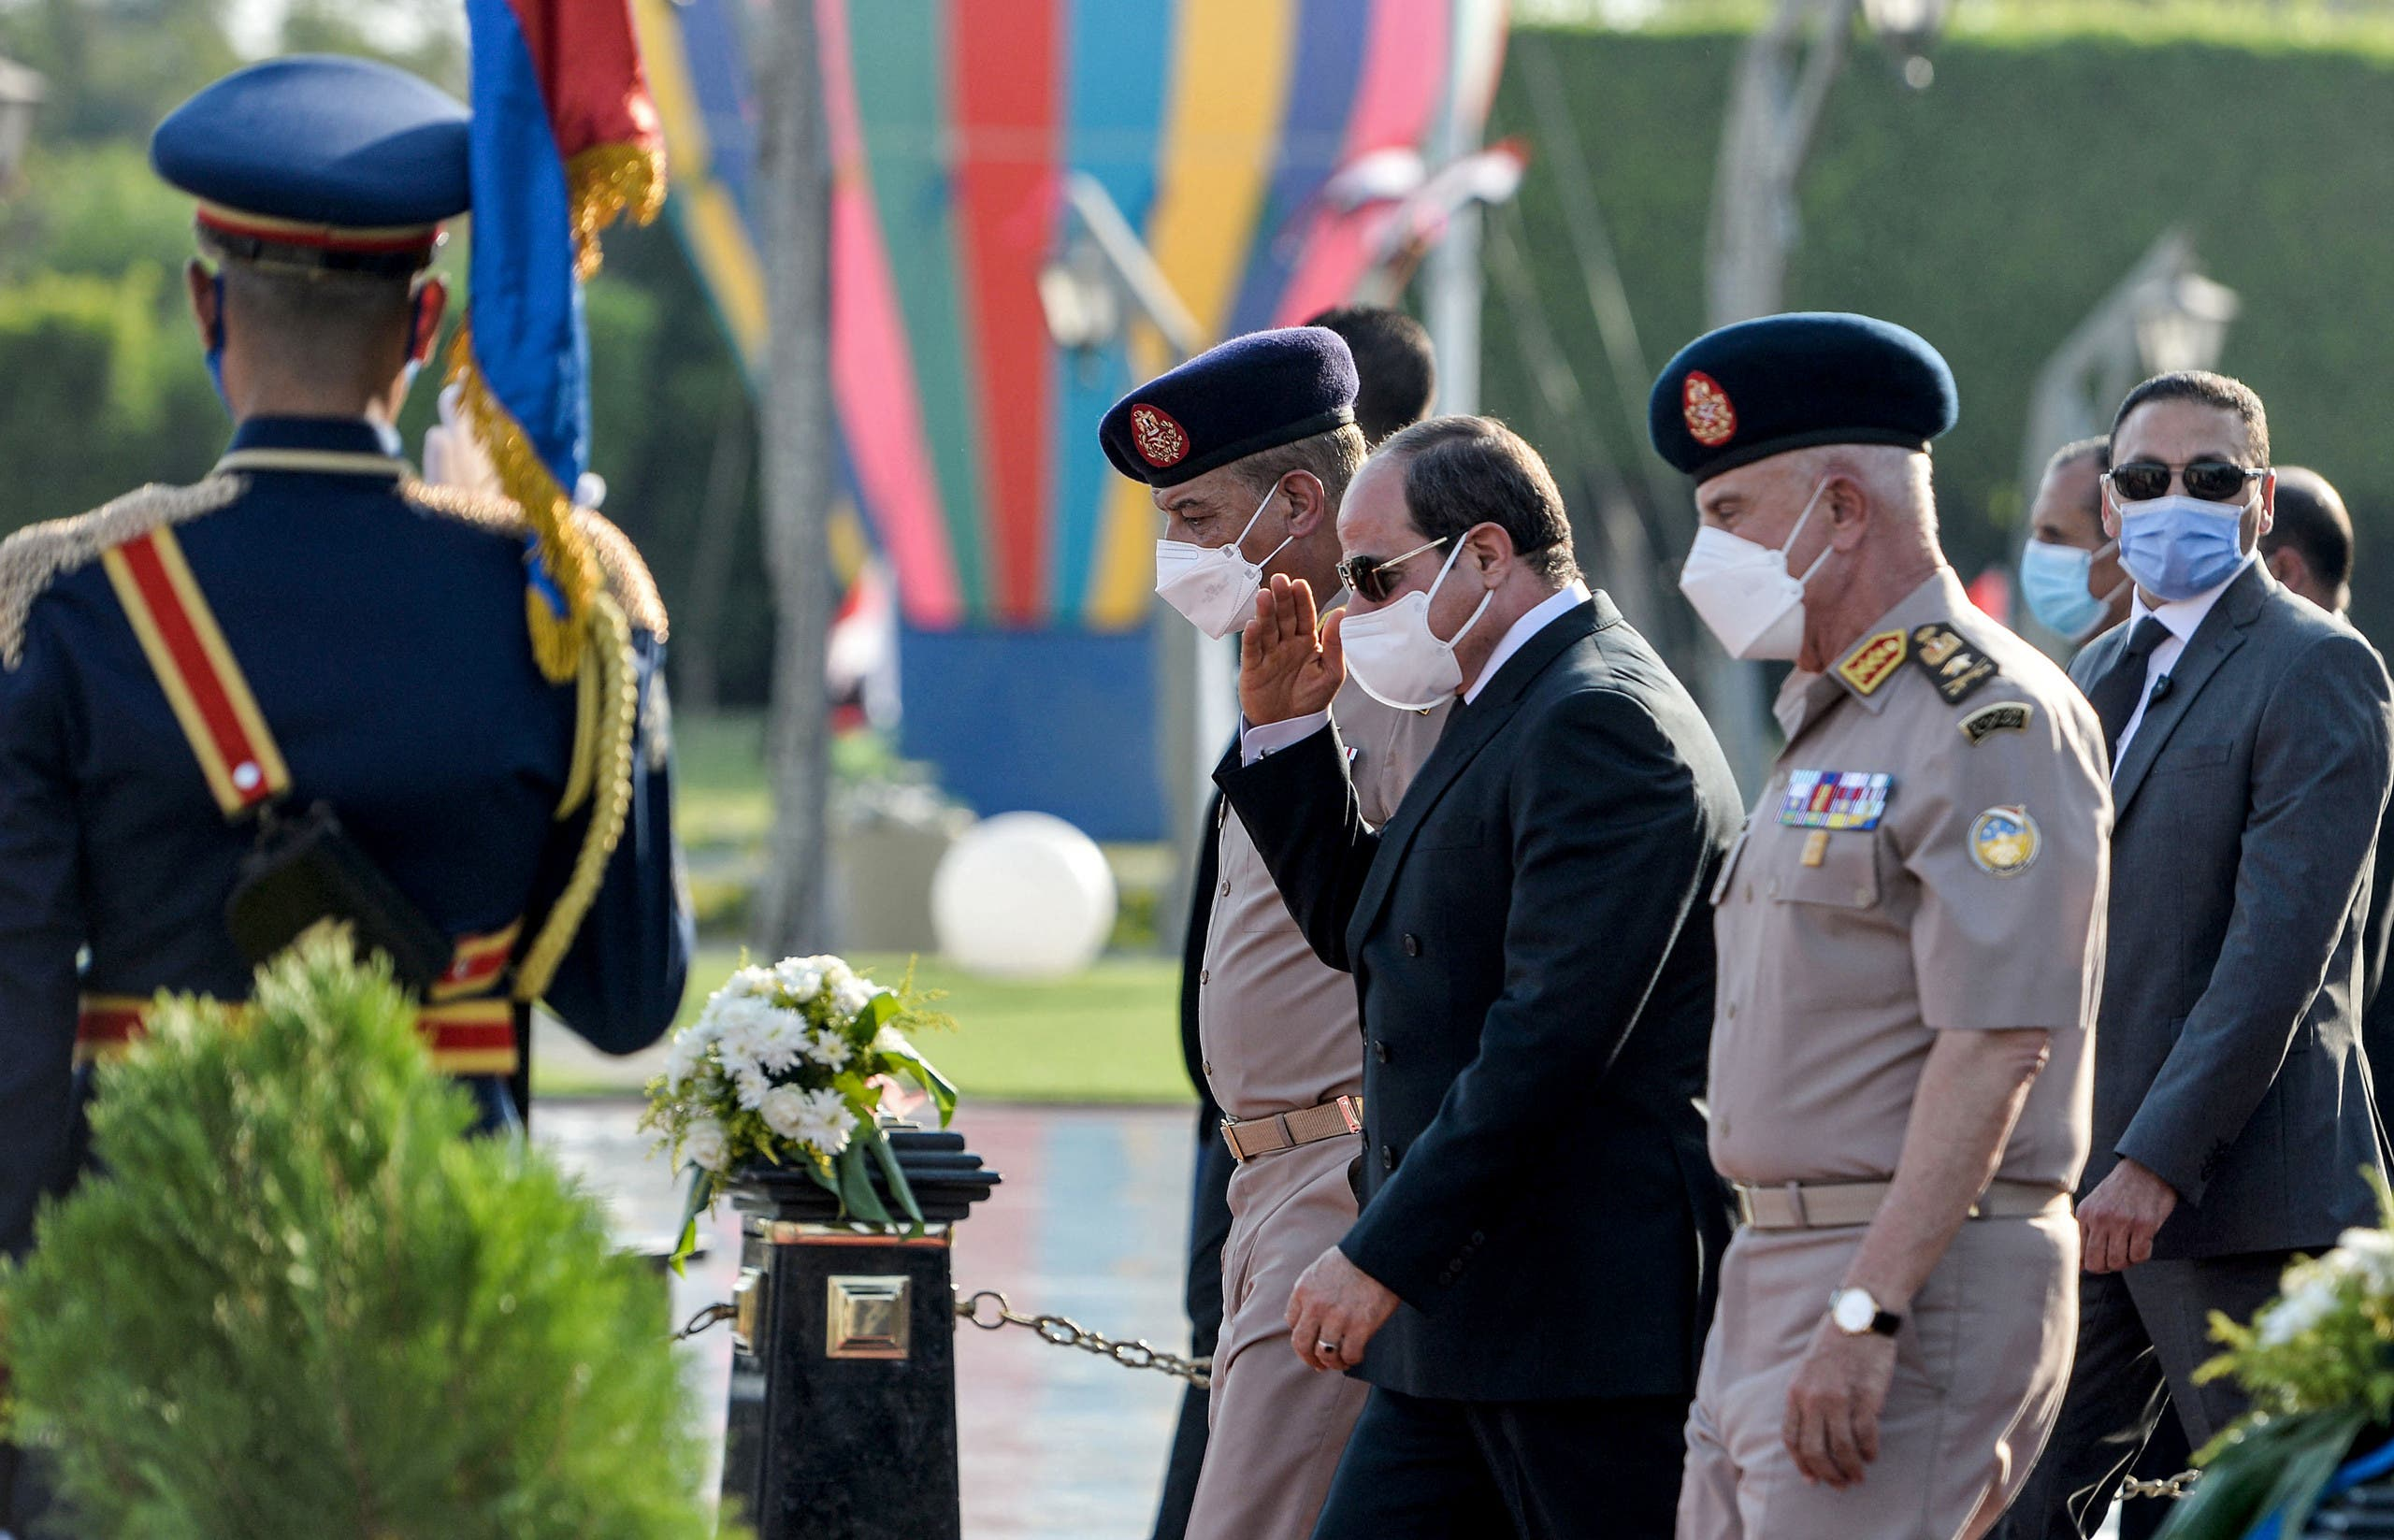 Egyptian President Abdel Fatah al-Sissi (C) attends the funeral of the widow of late president Anwar al-Sadat, Jihan al-Sadat, as she buried next to her husband at the unknown soldier memorial, in Cairo on July 9, 2021. (AFP)